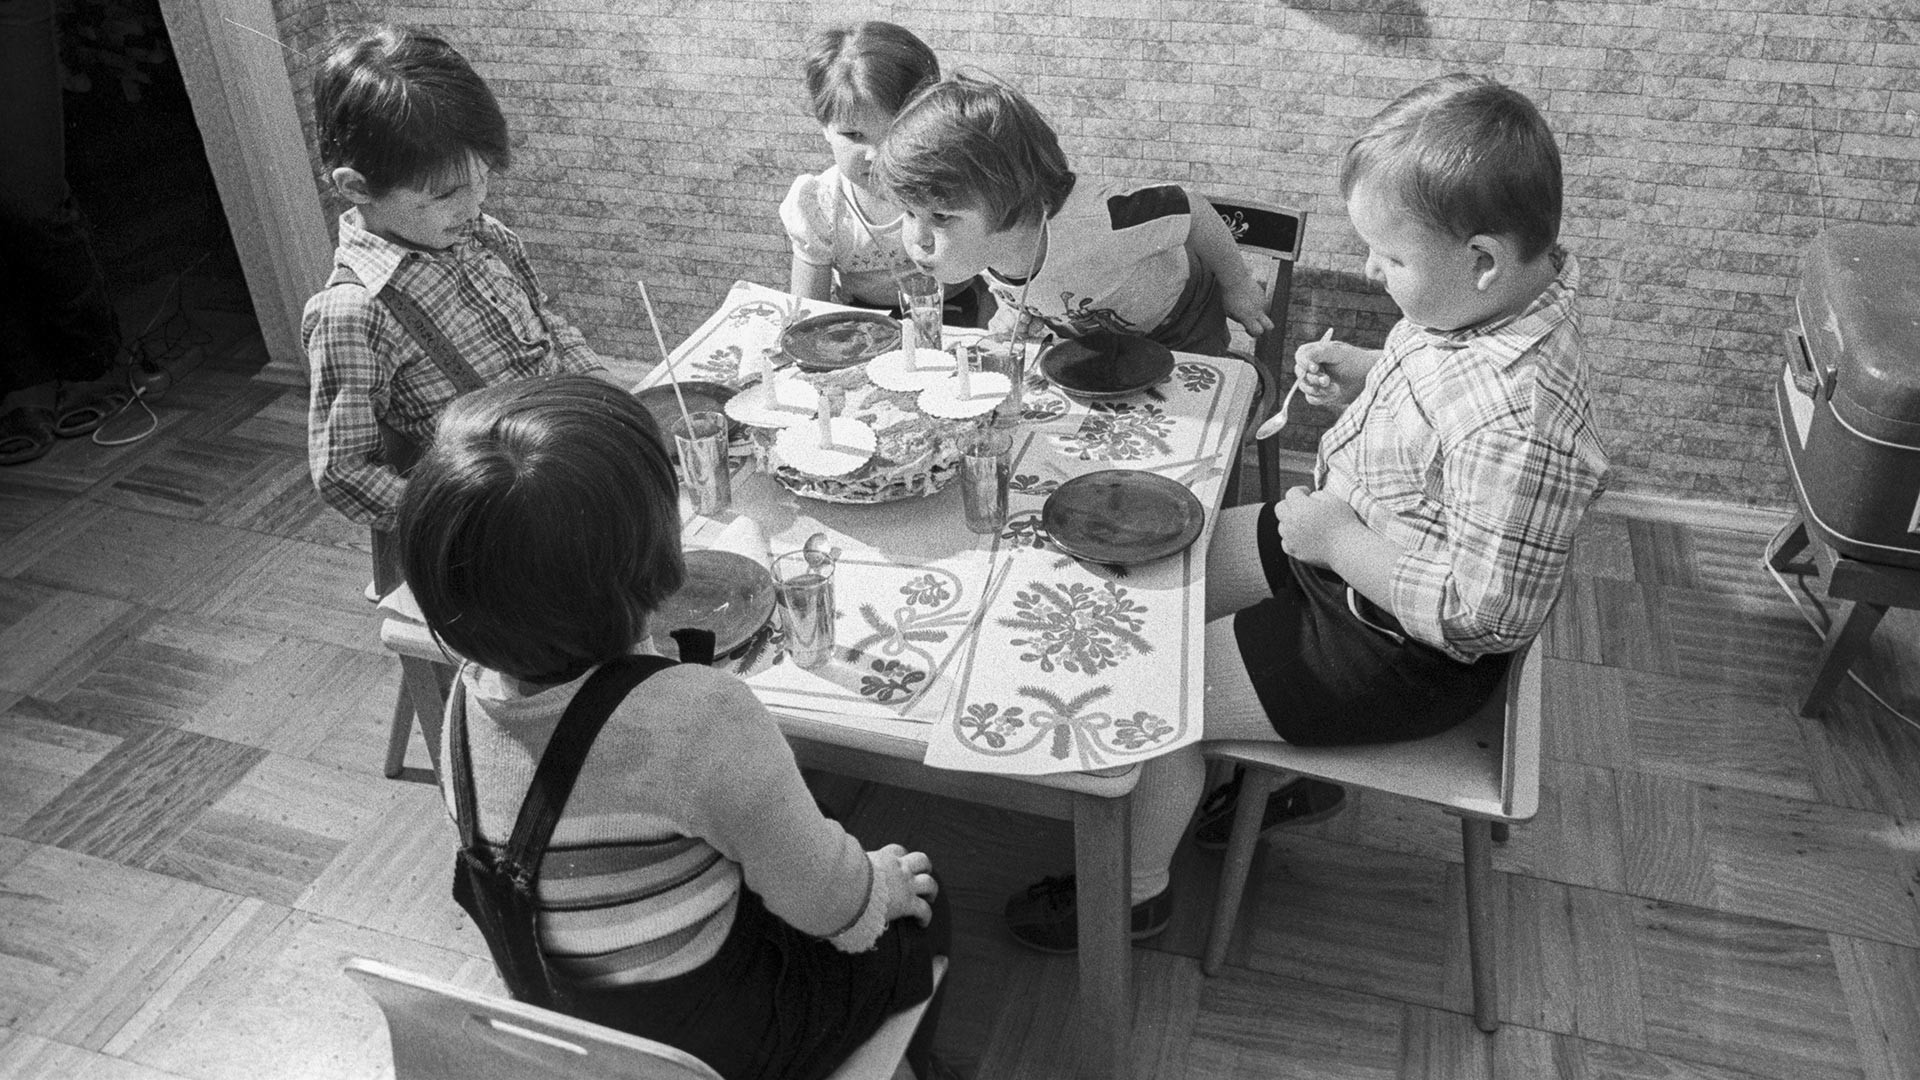 A typical child's birthday in the USSR looked like this.